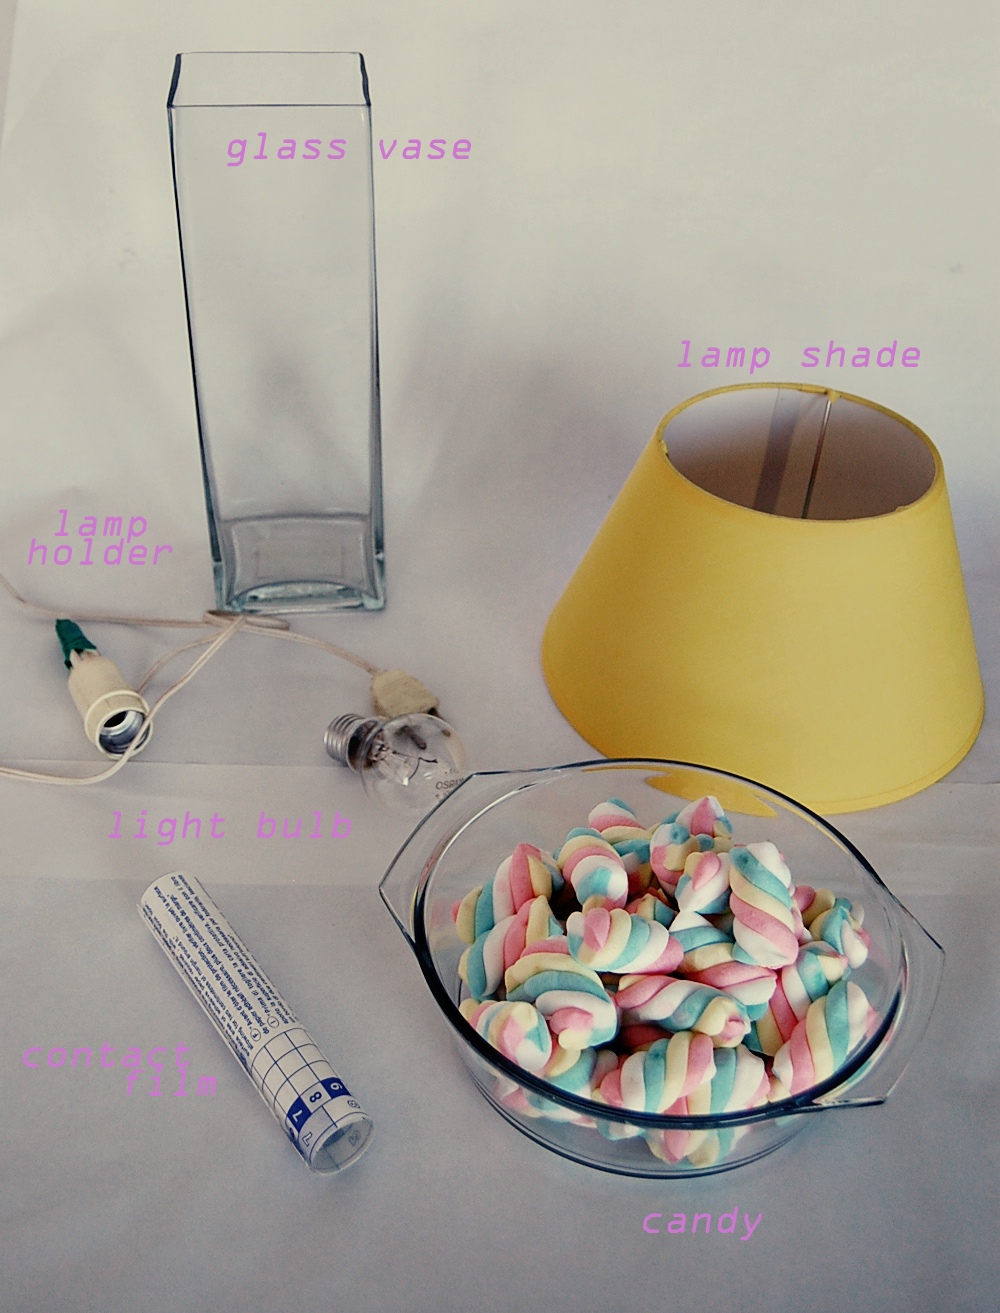 candylamp1